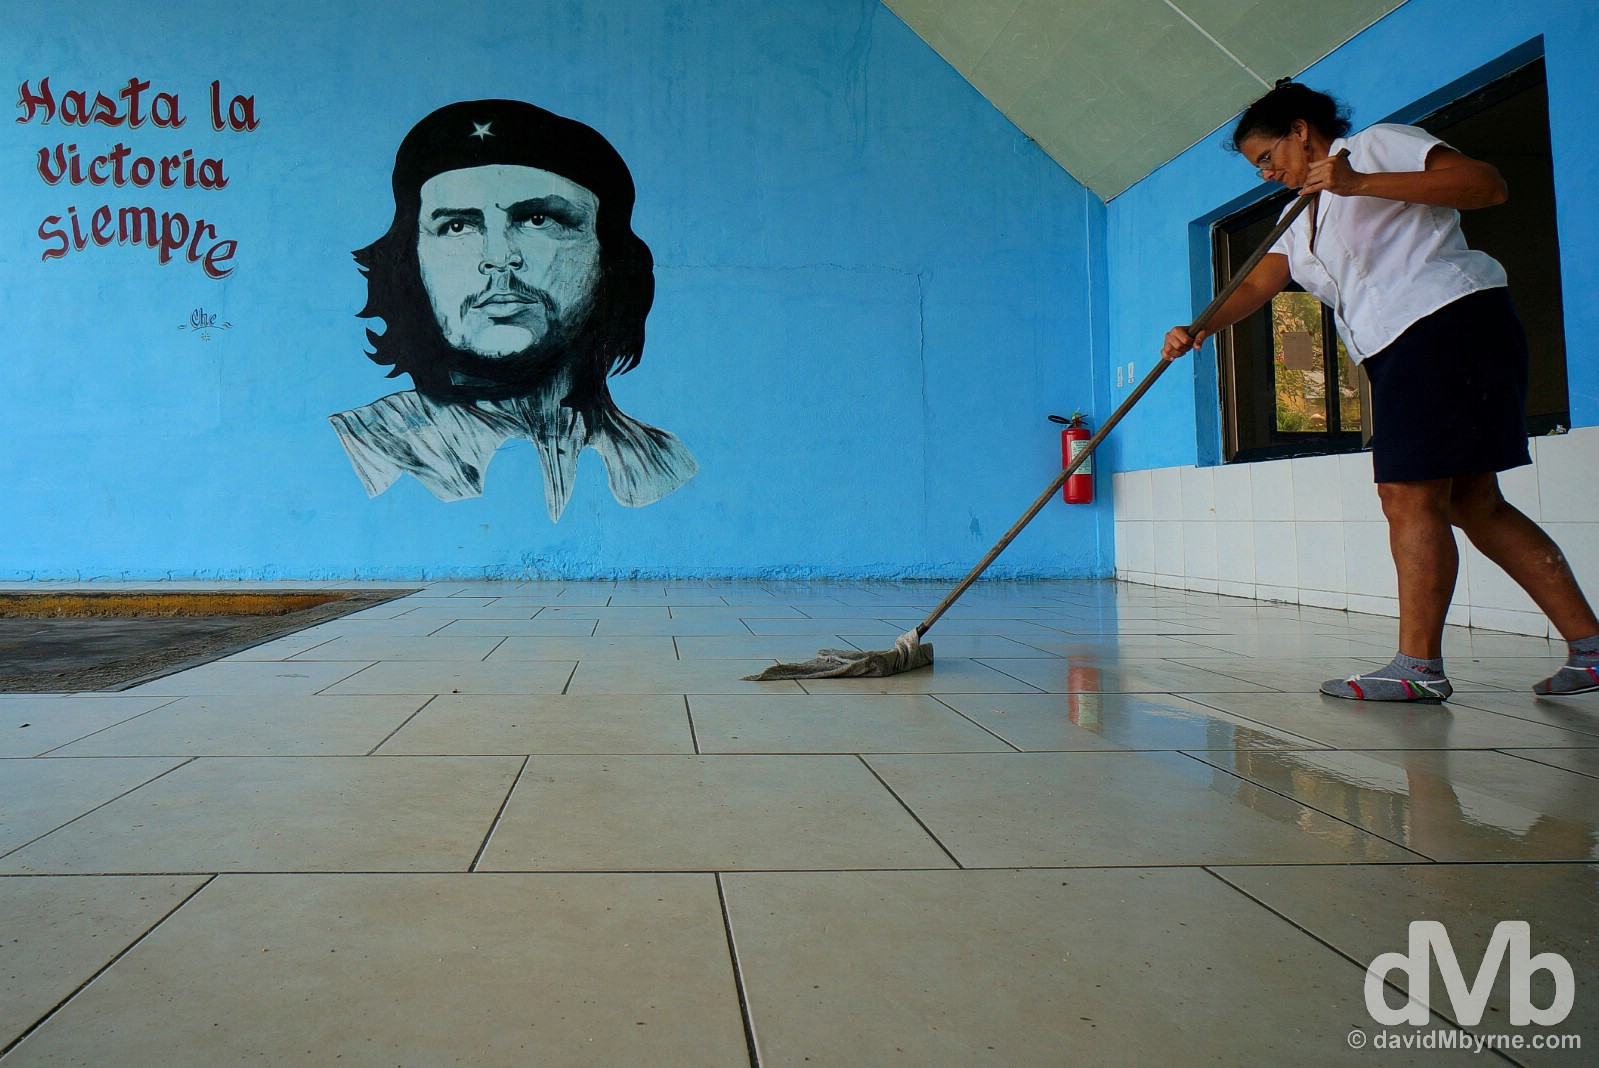 Mopping the floor of the bus station in Santa Clara, Cuba. May 3, 2015.